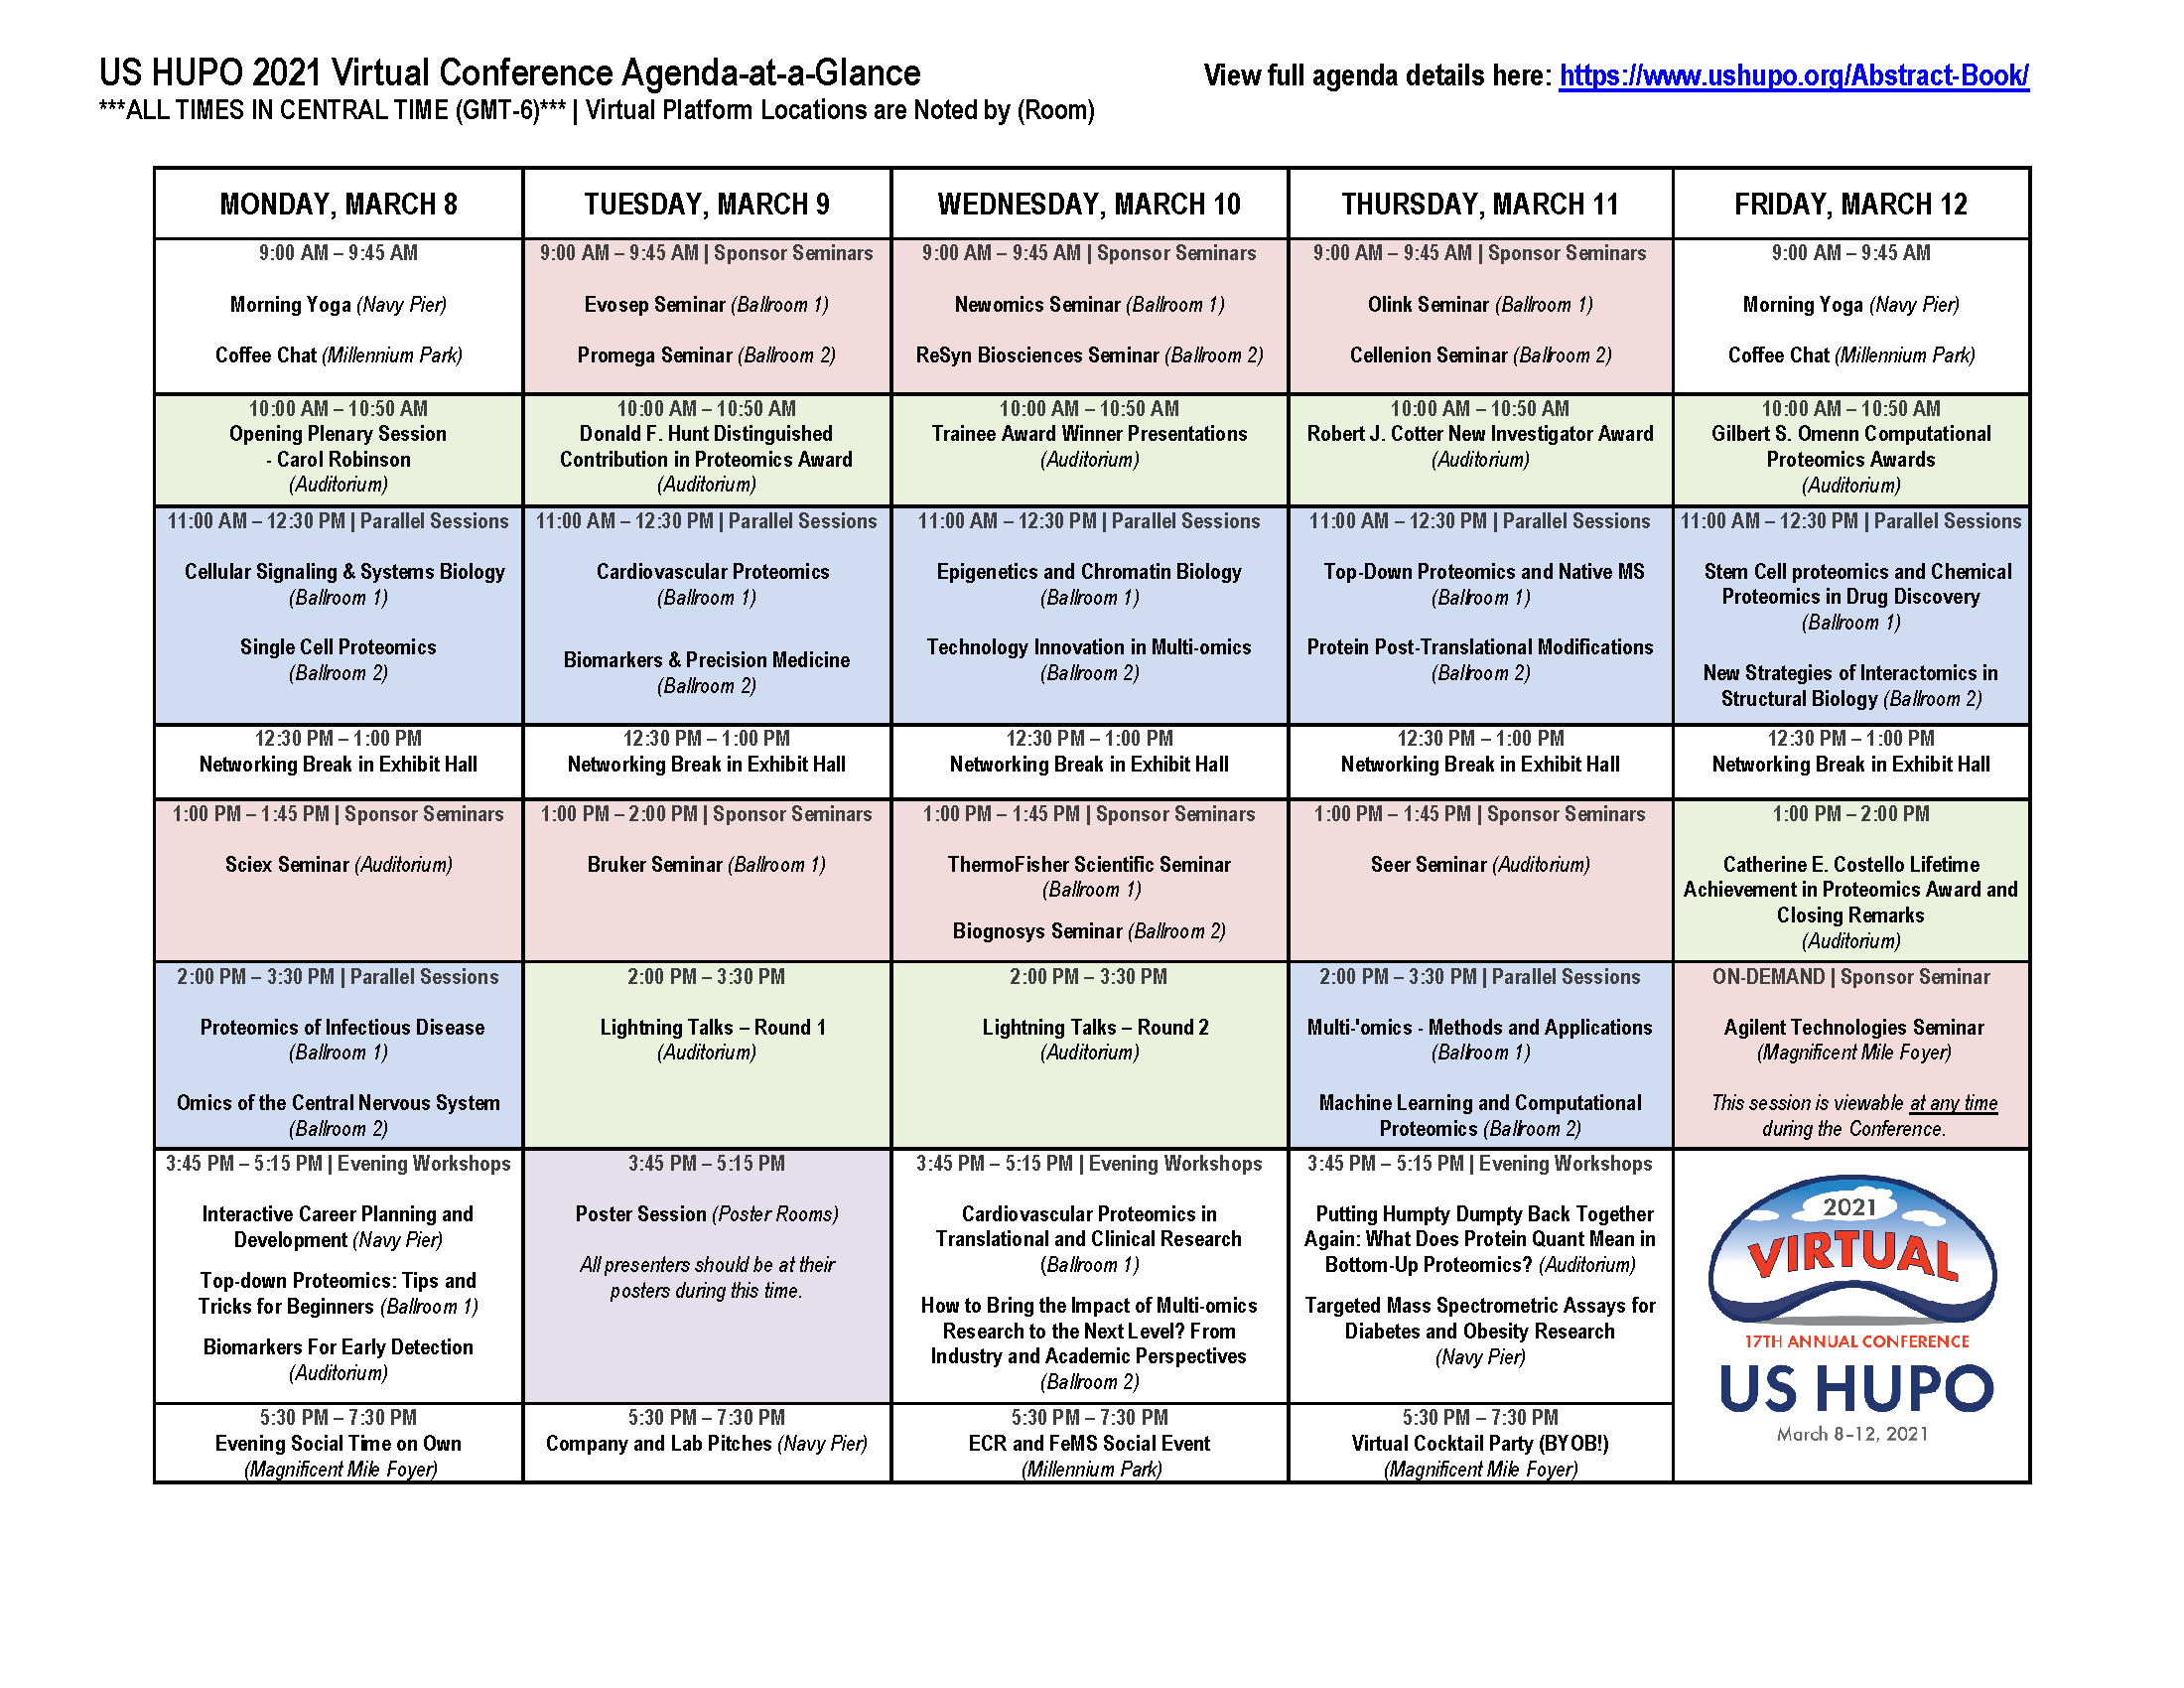 US HUPO 2021 Agenda-at-a-Glance CST.png